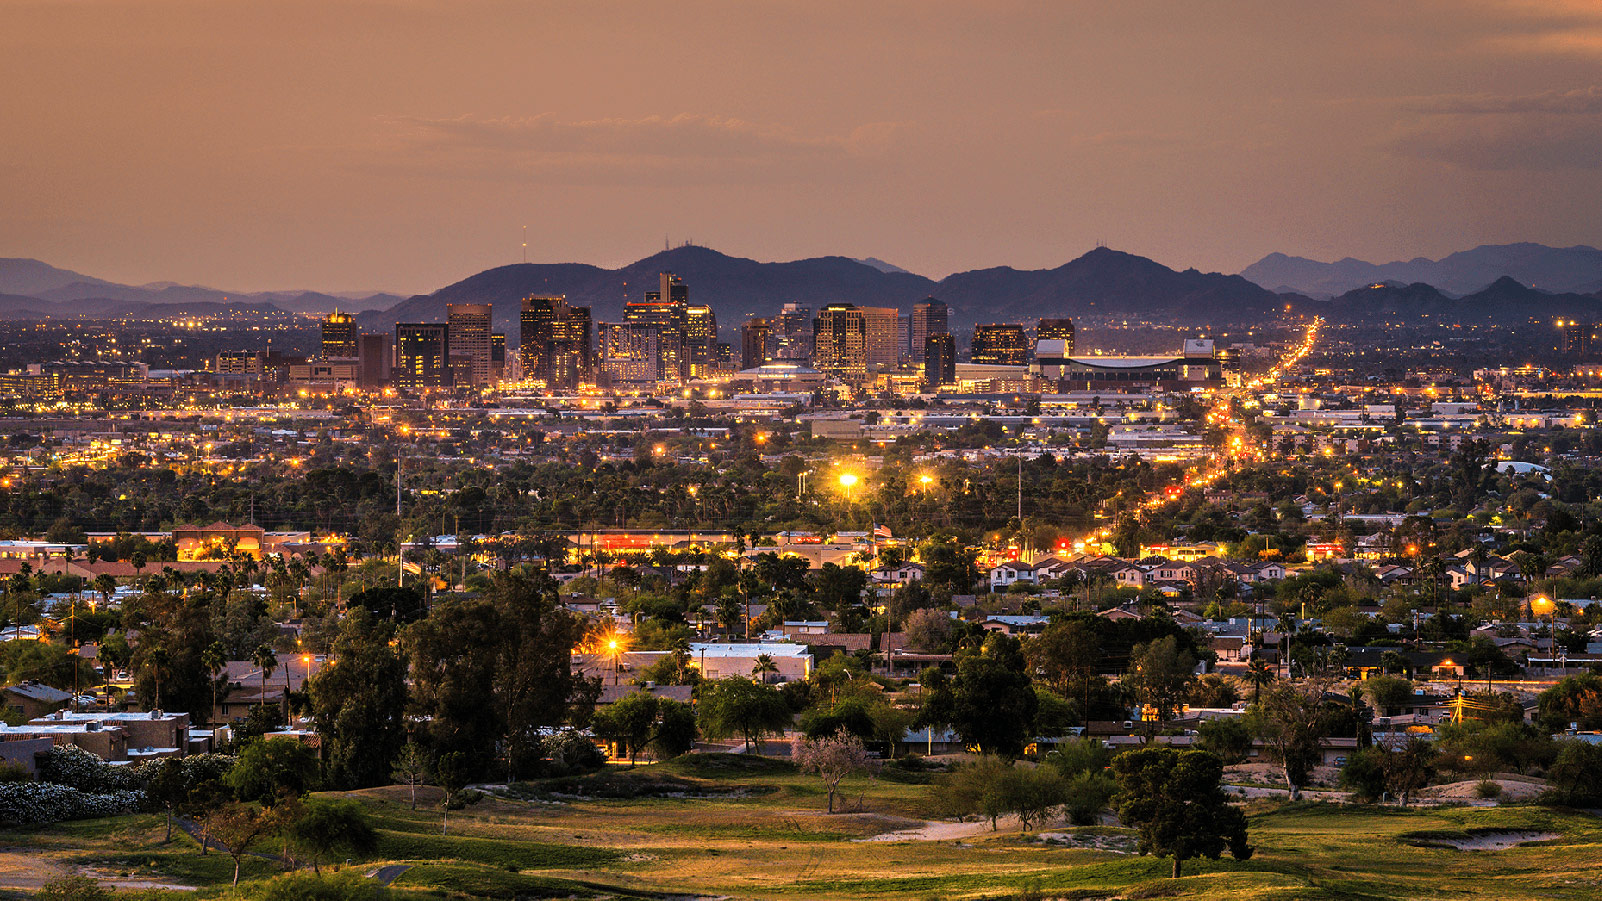 Phoenix metro area at dusk with greenery.